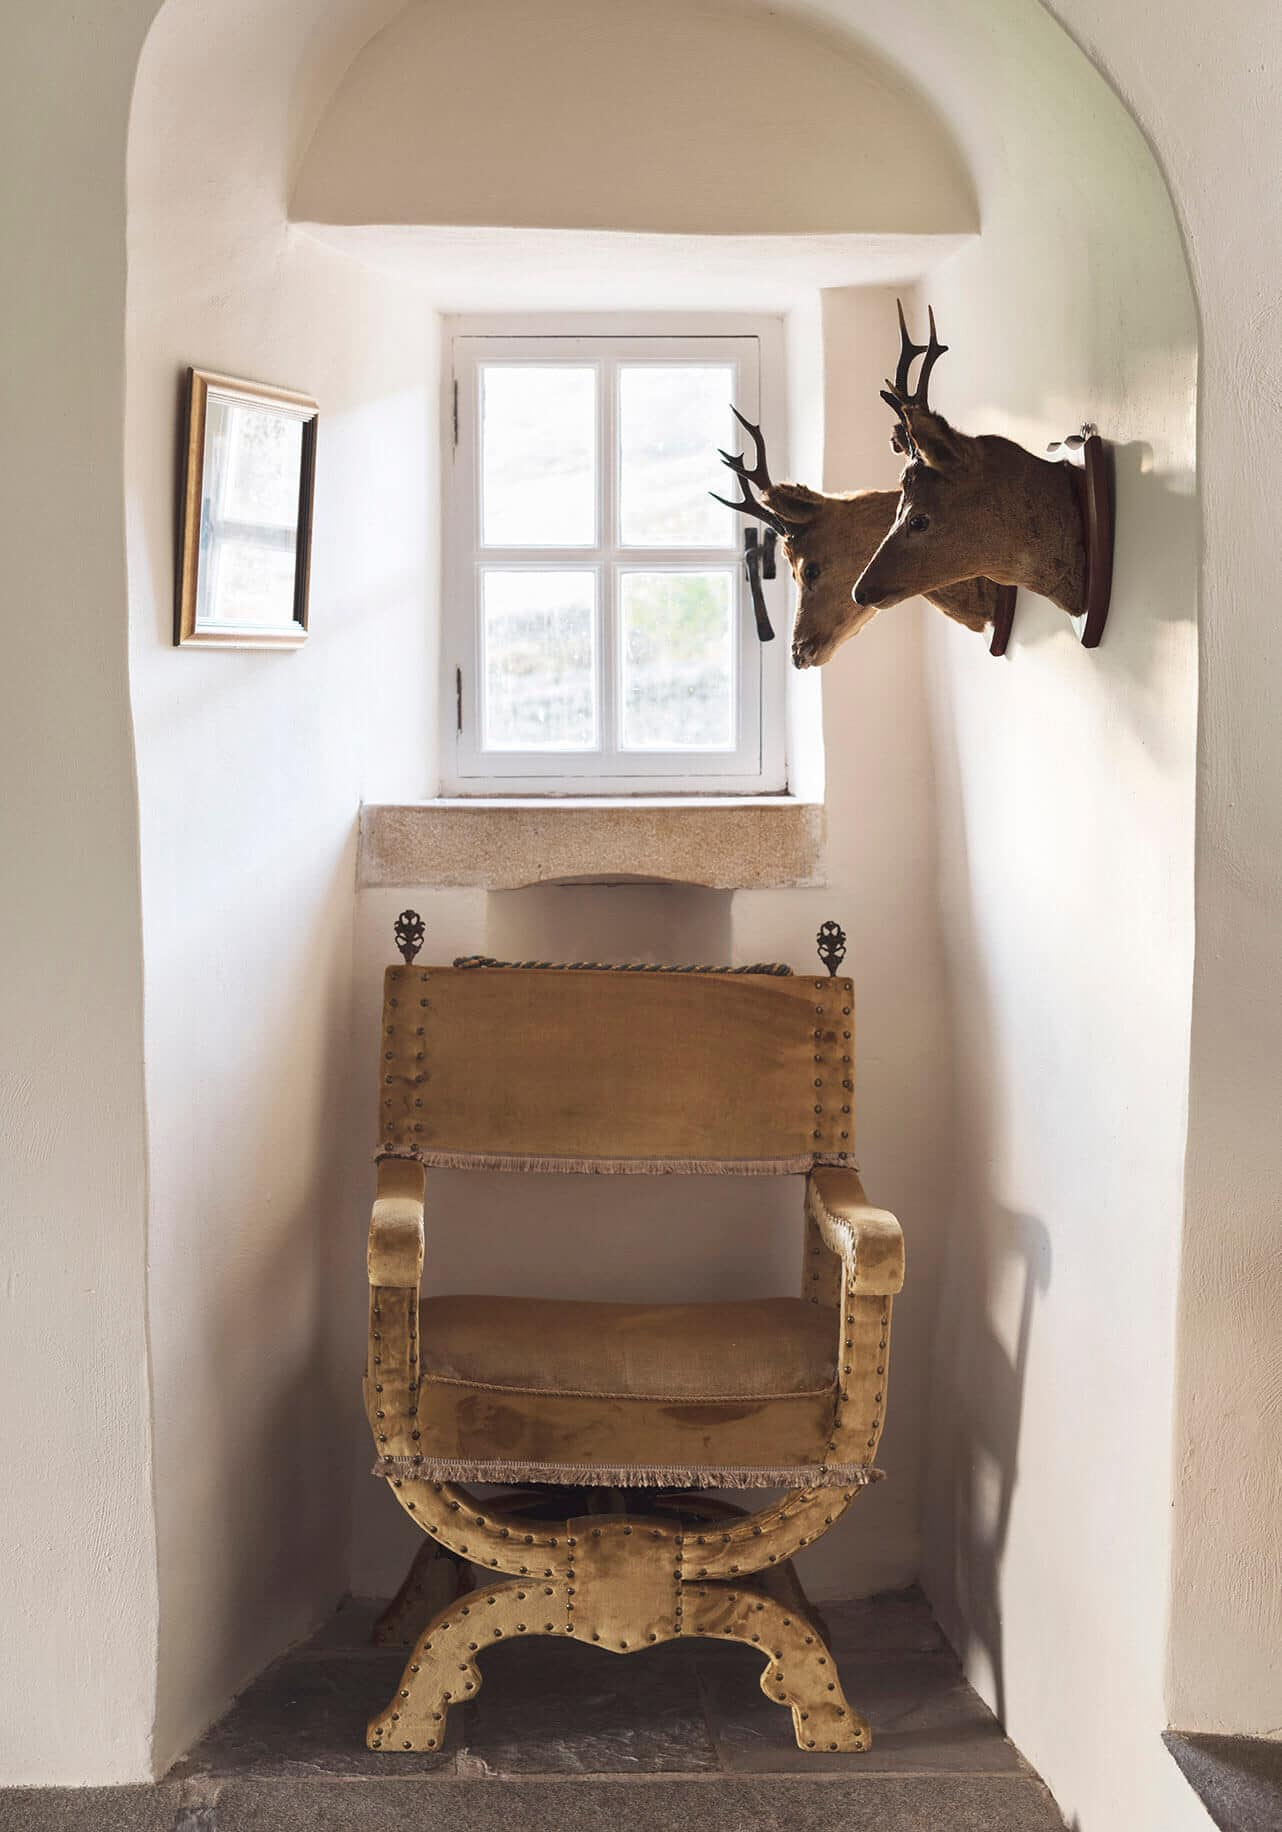 Wooden chair in scottish castle